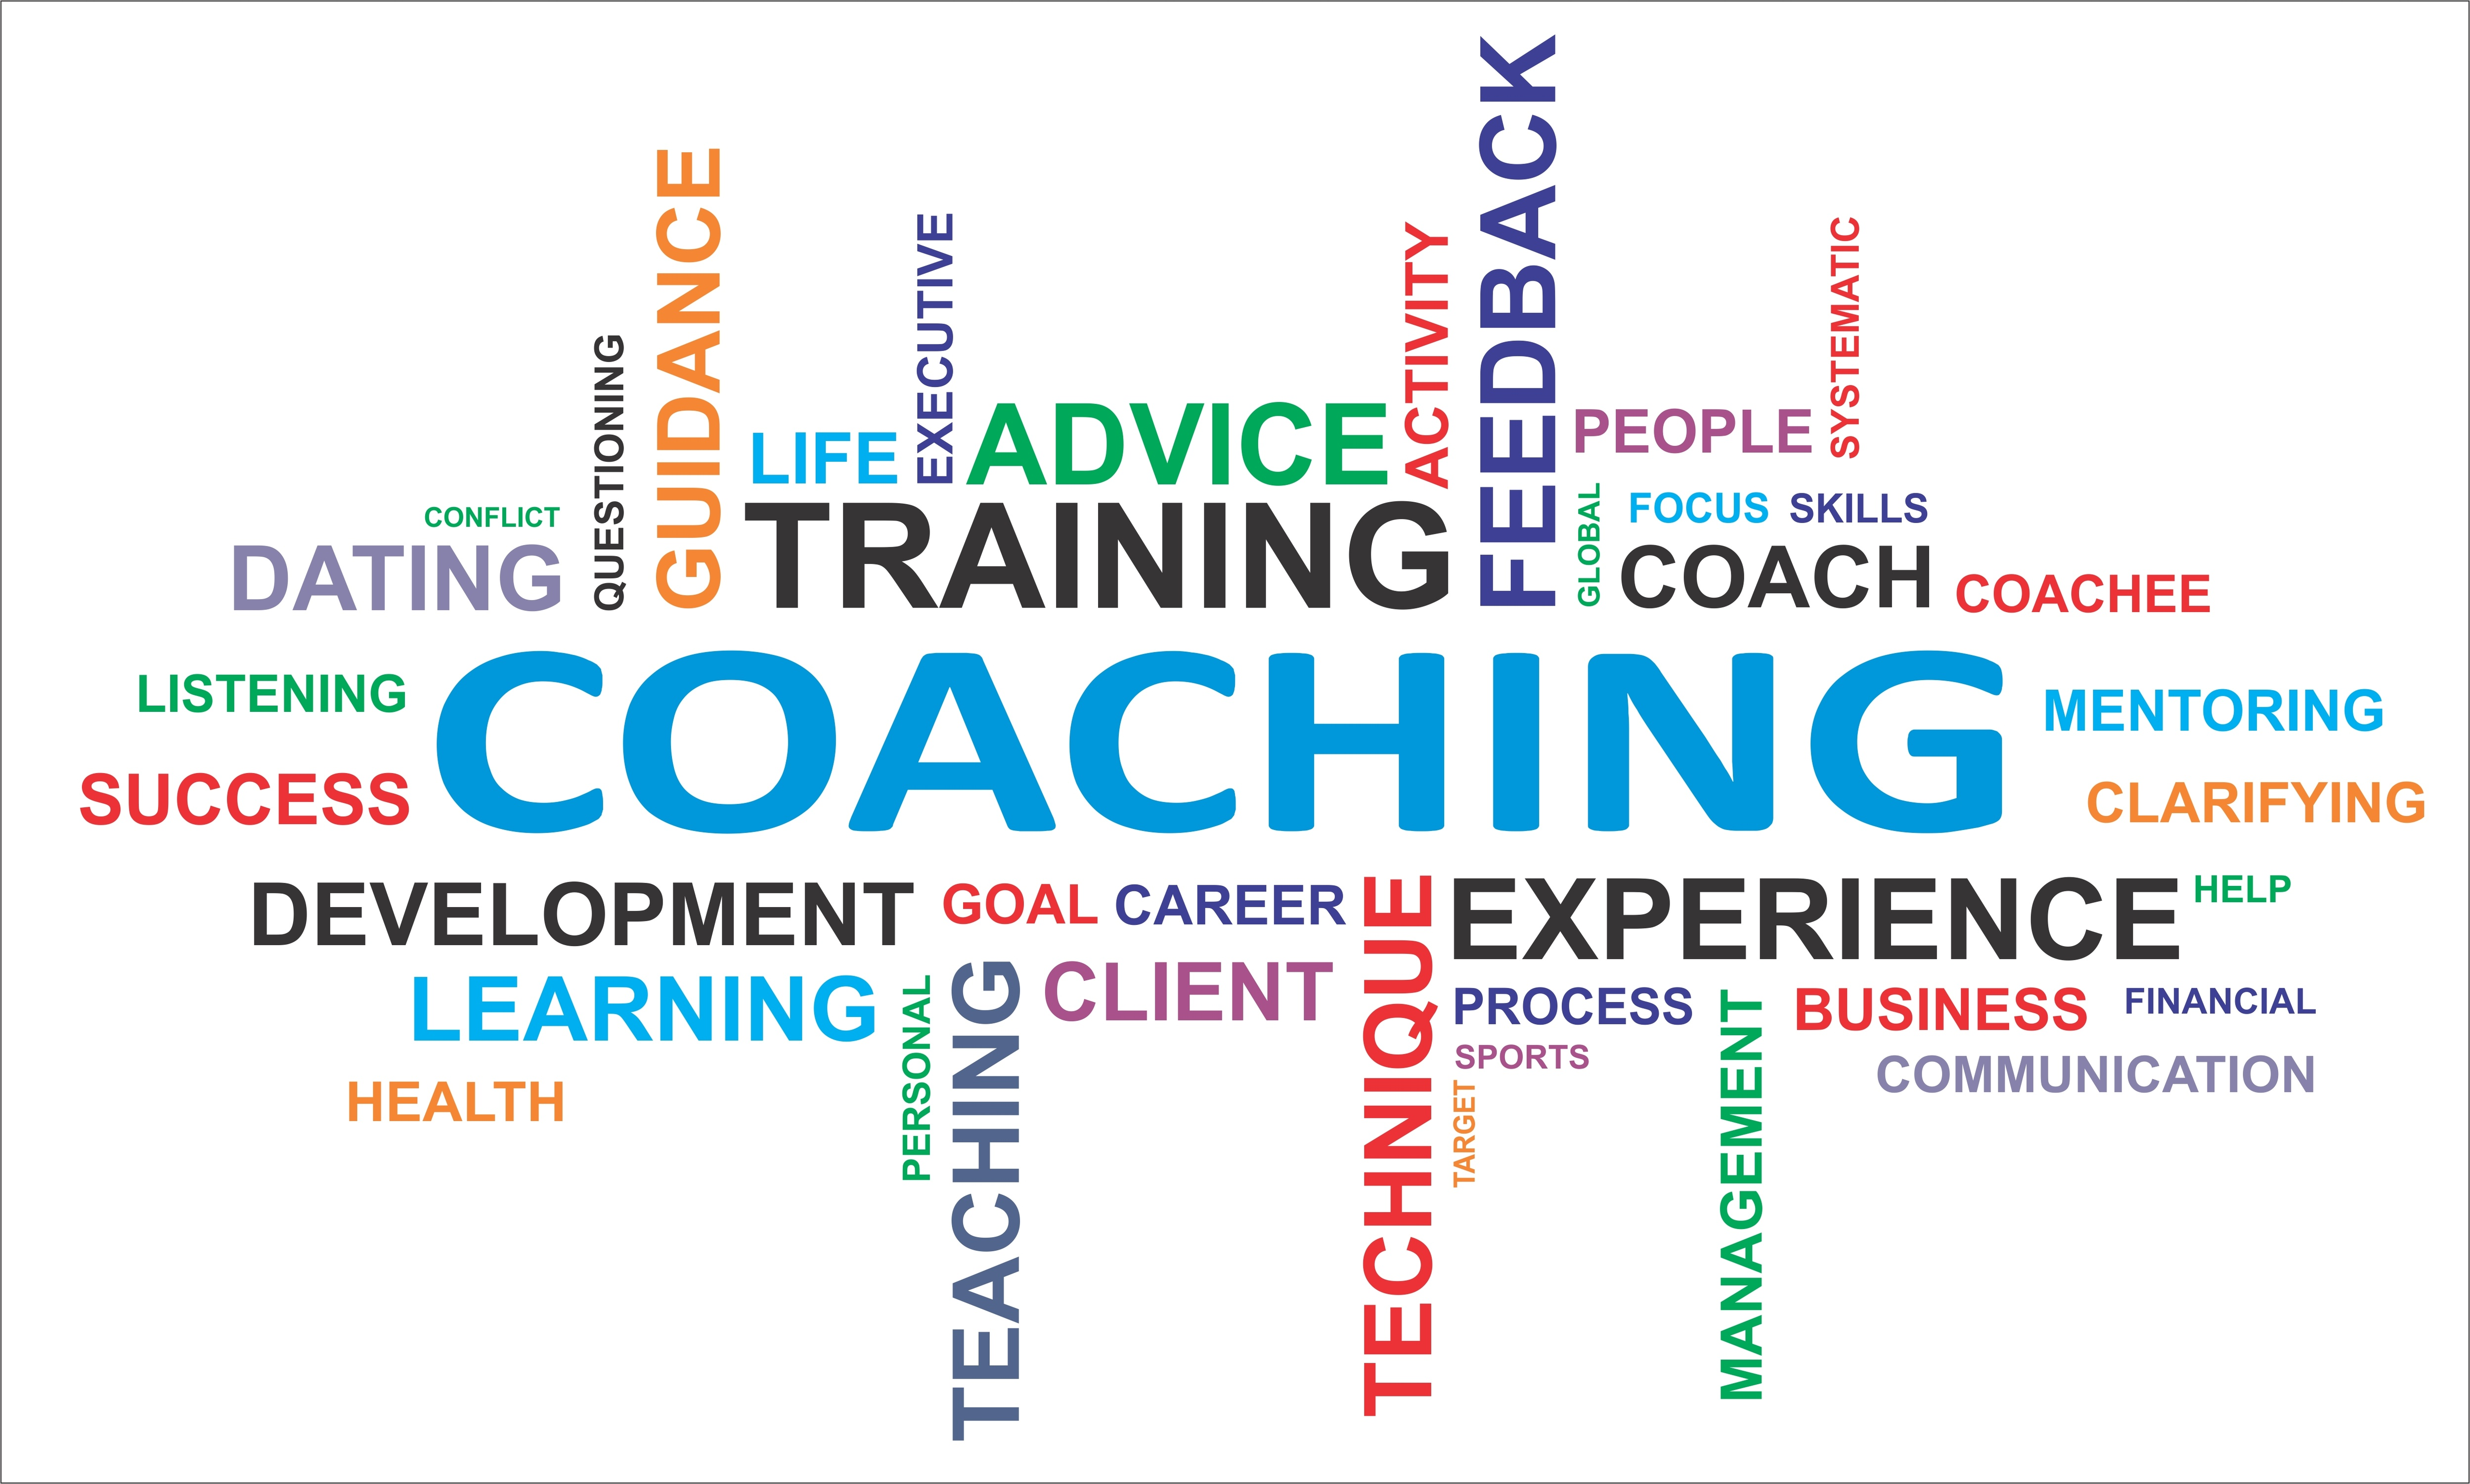 Getting Your Life Back On Track Through Mentoring From A Life Coach